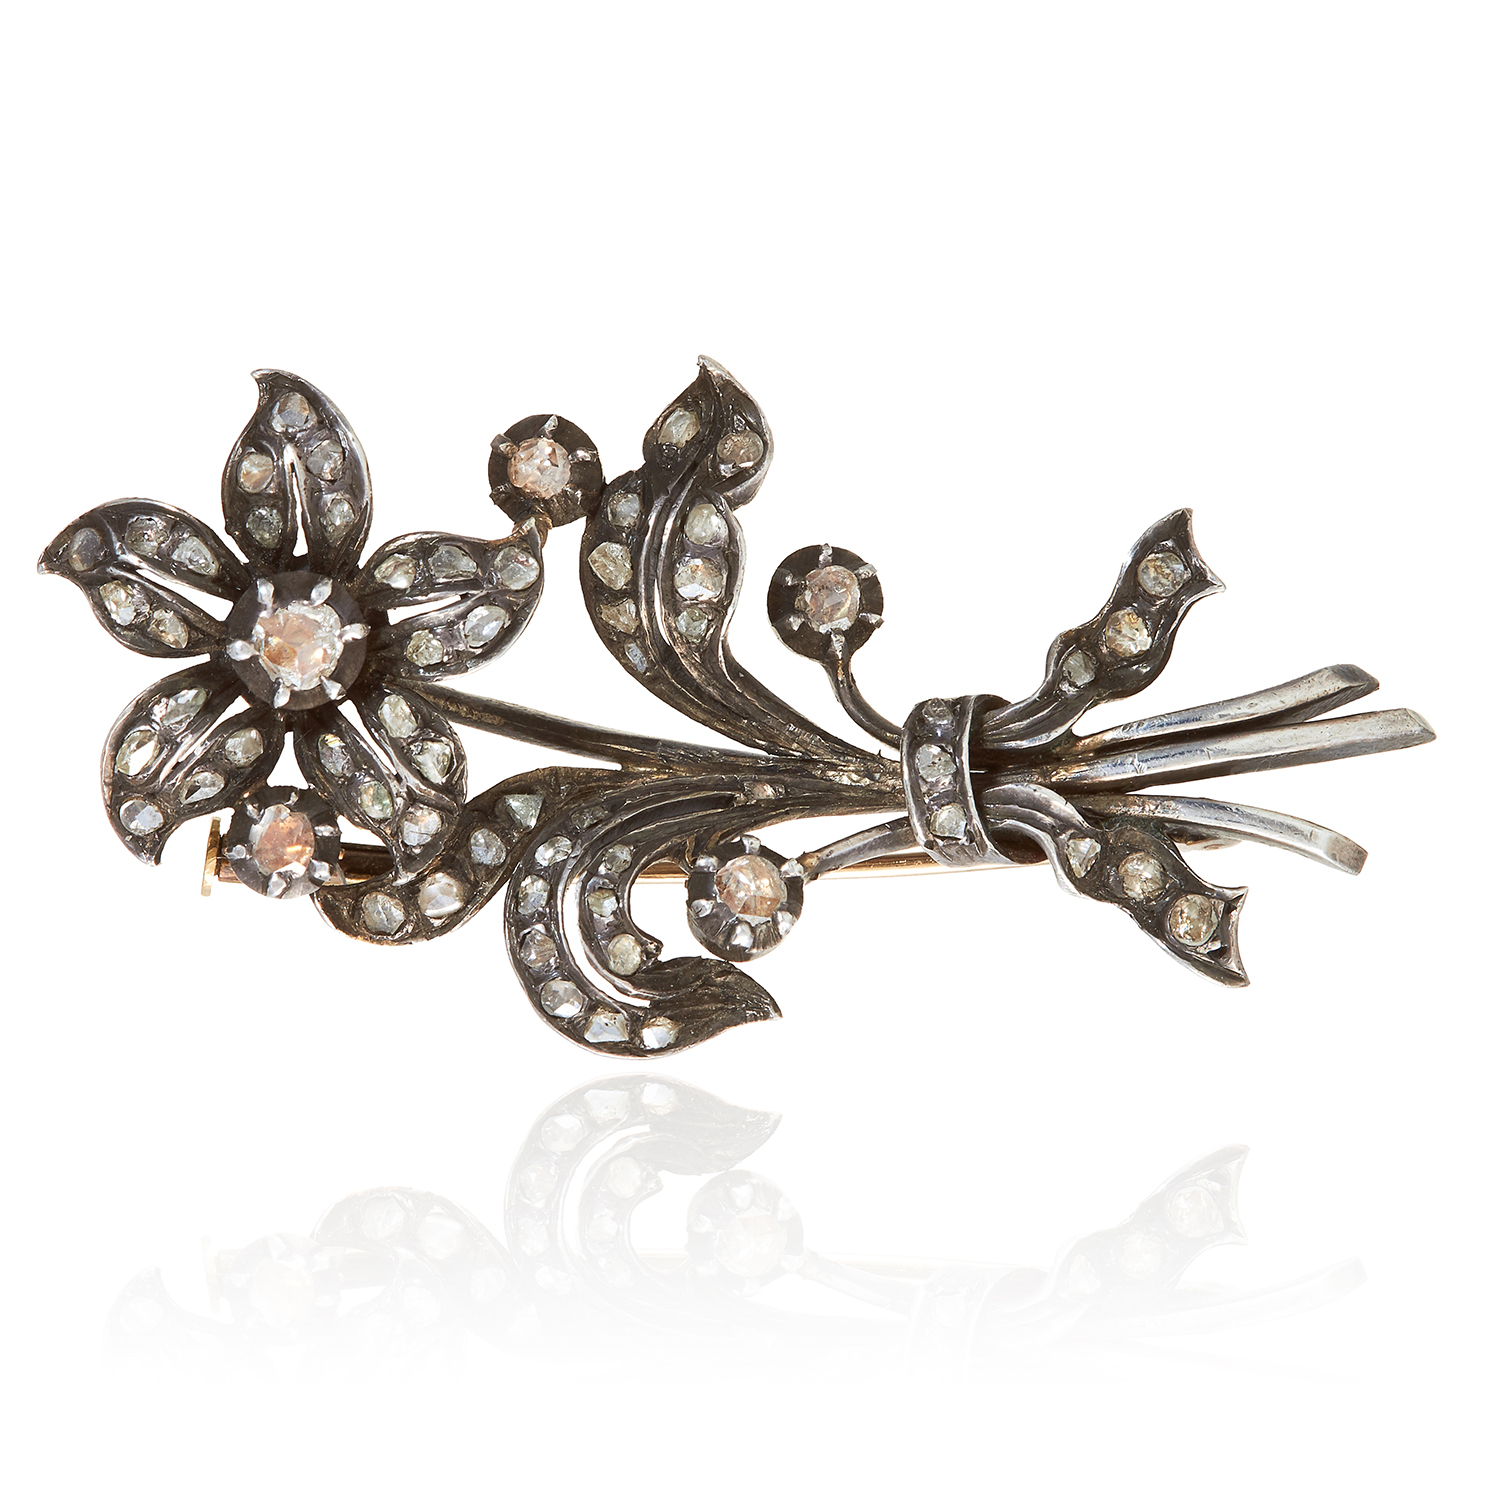 Los 333 - AN ANTIQUE DIAMOND FLOWER BROOCH, 19TH CENTURY in yellow gold and silver, jewelled with rose cut